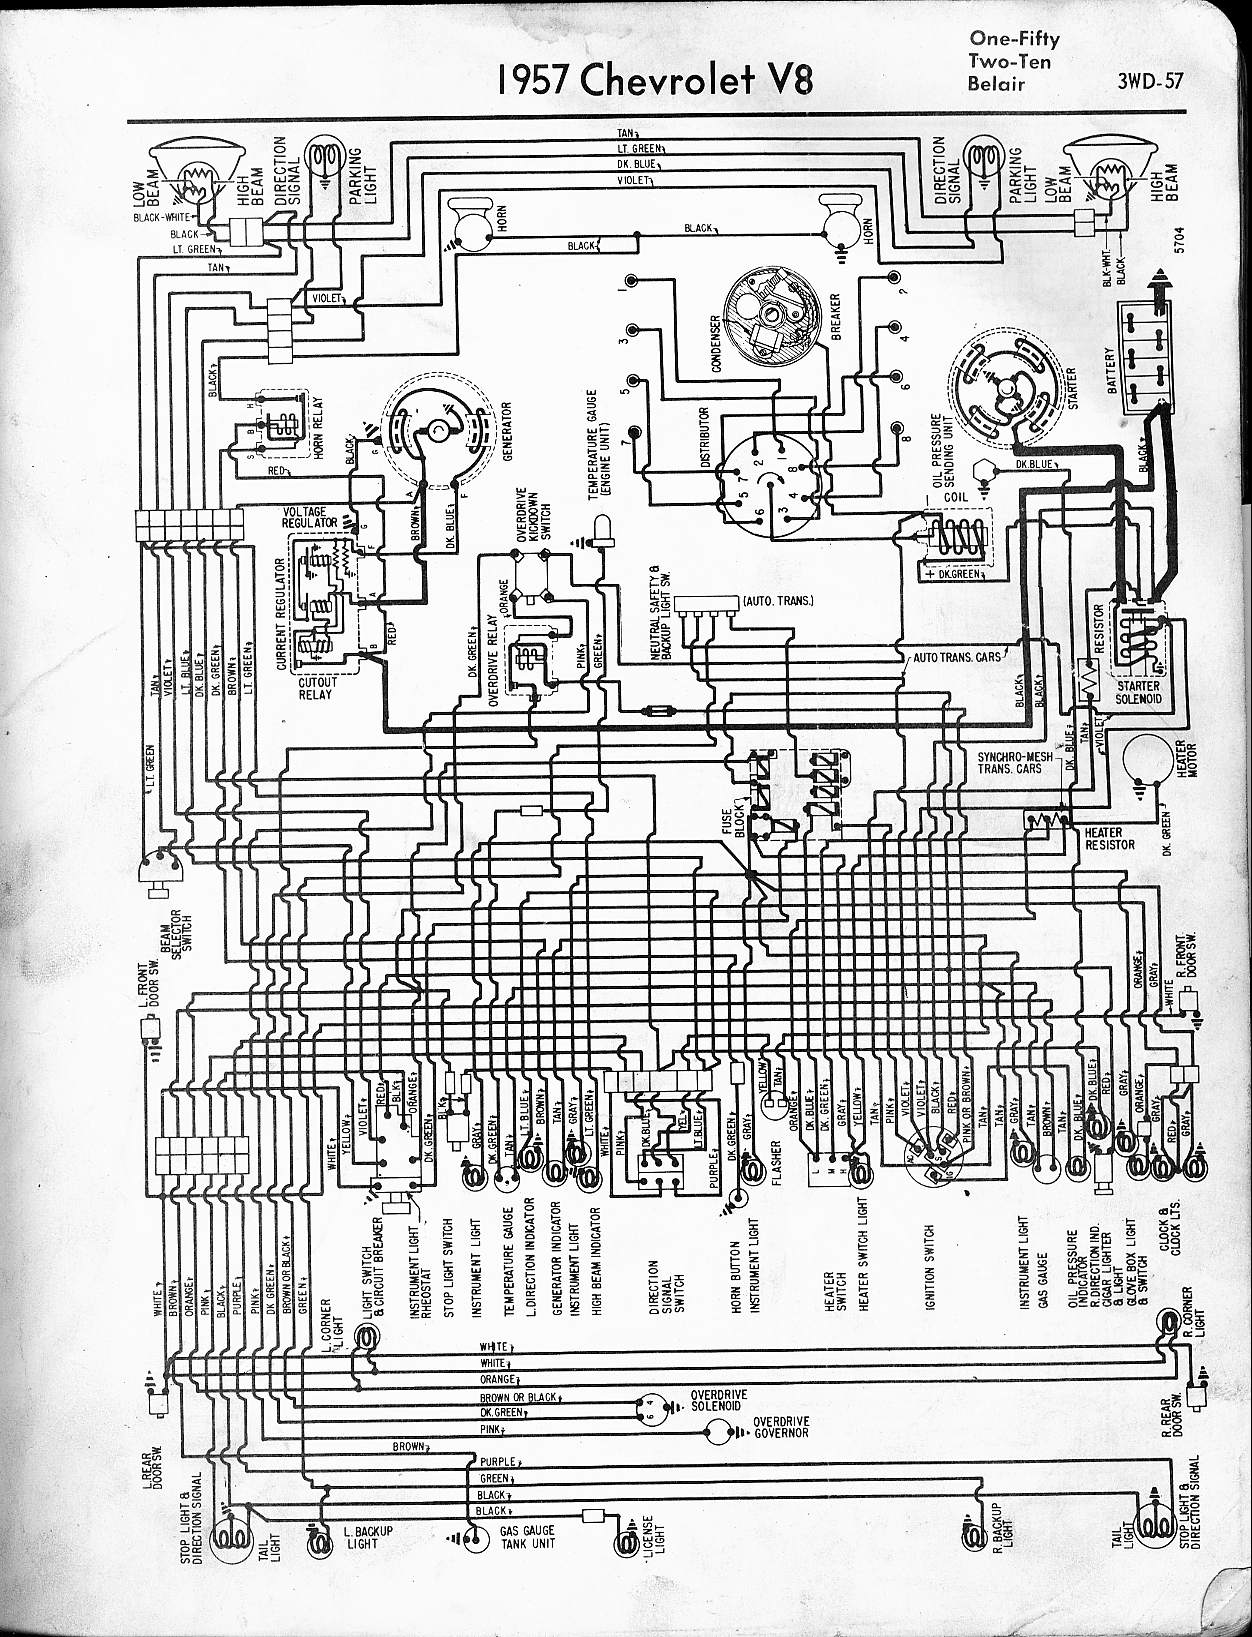 1954 Chevrolet Ignition Switch Wiring Diagram Worksheet And Corvette Images Gallery